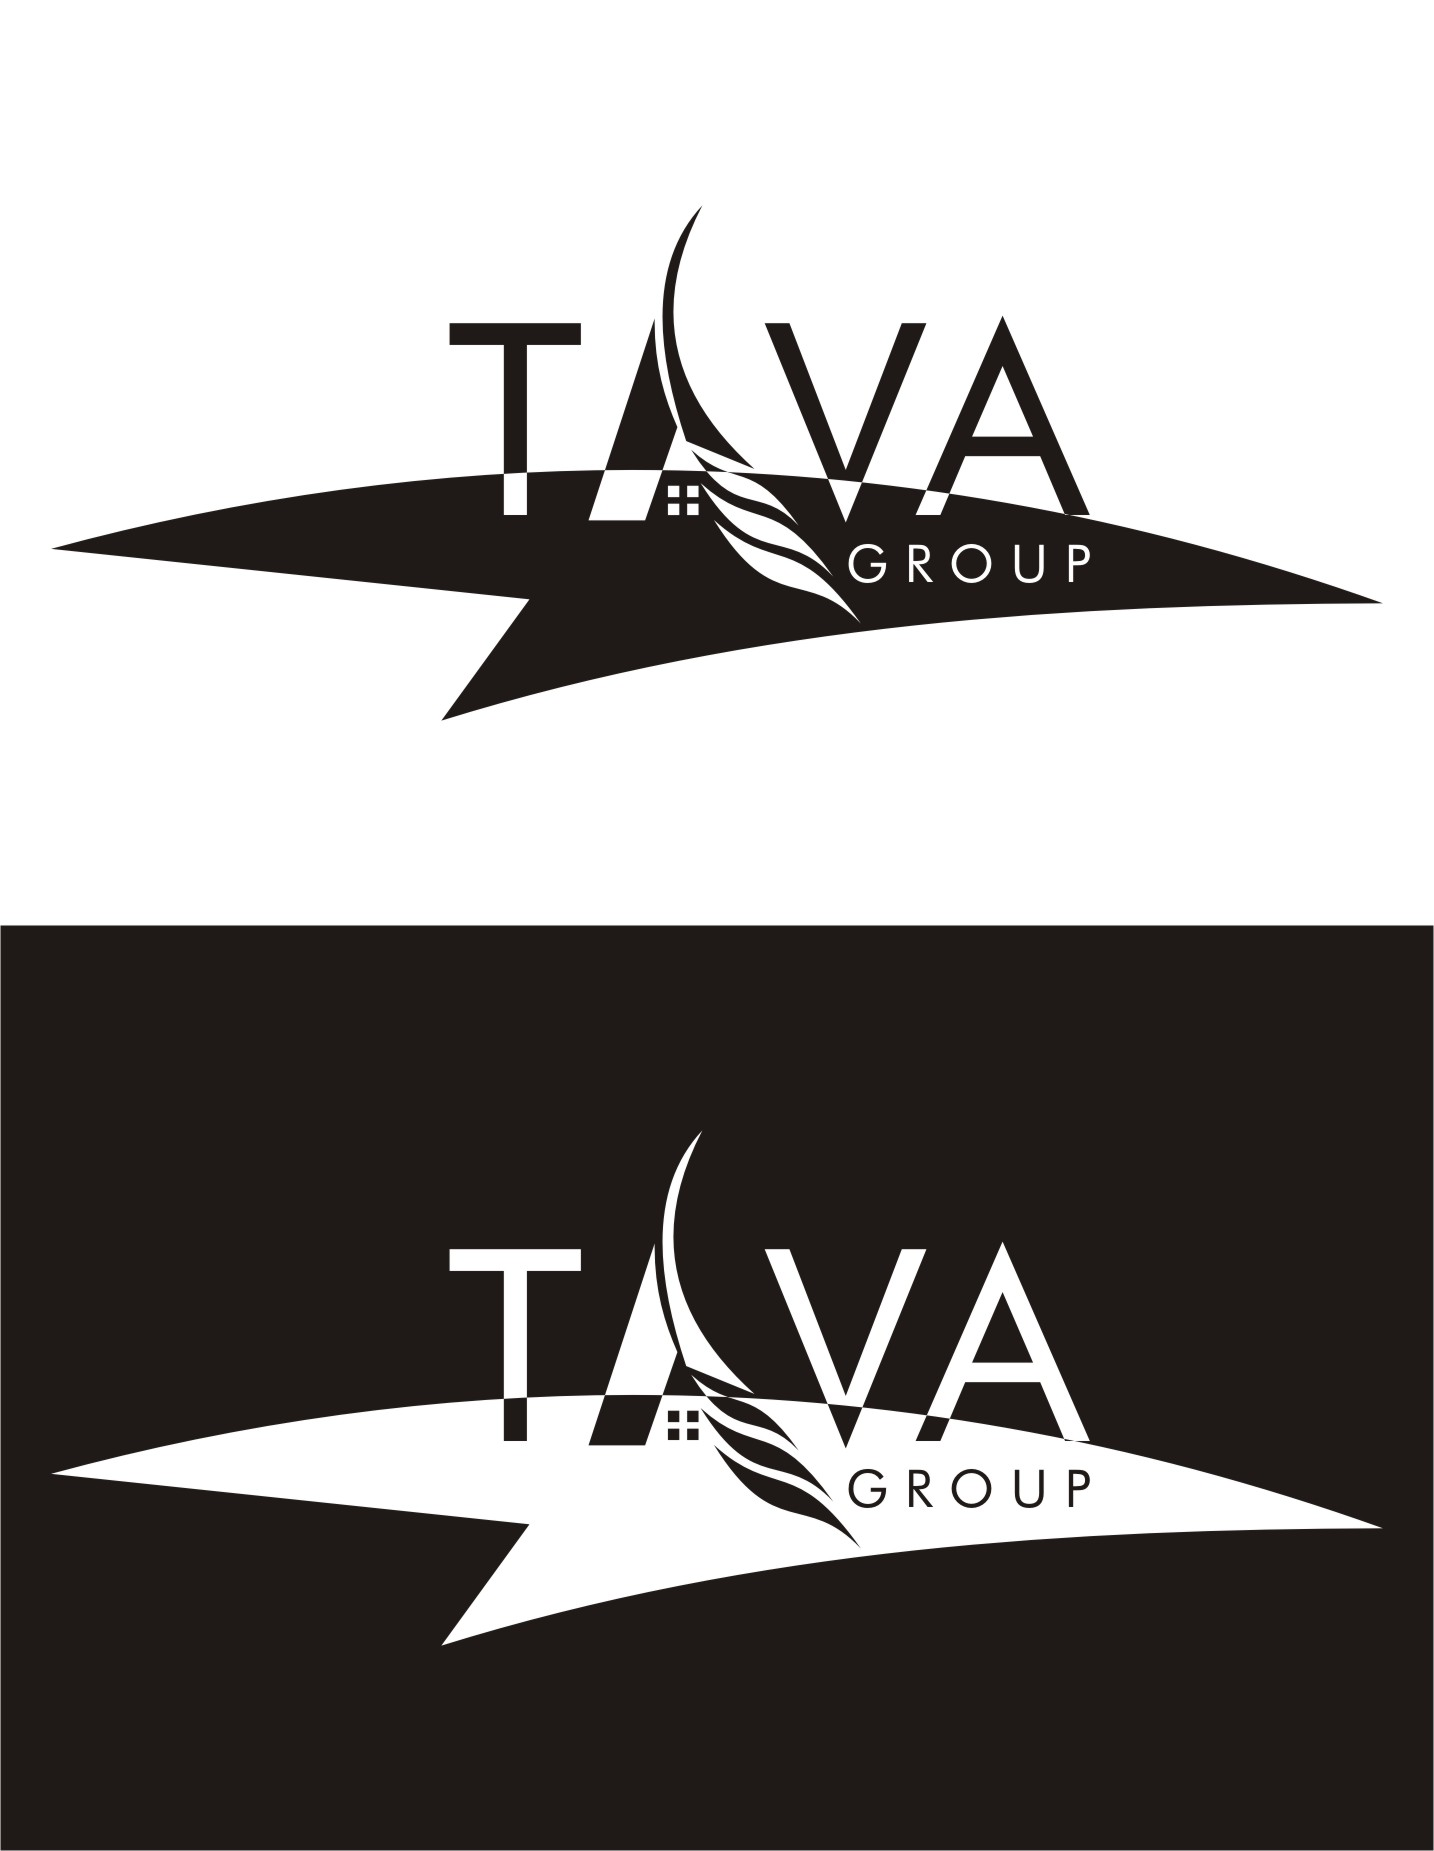 Logo Design by I graphics GRAPHICS - Entry No. 283 in the Logo Design Contest Creative Logo Design for Tava Group.